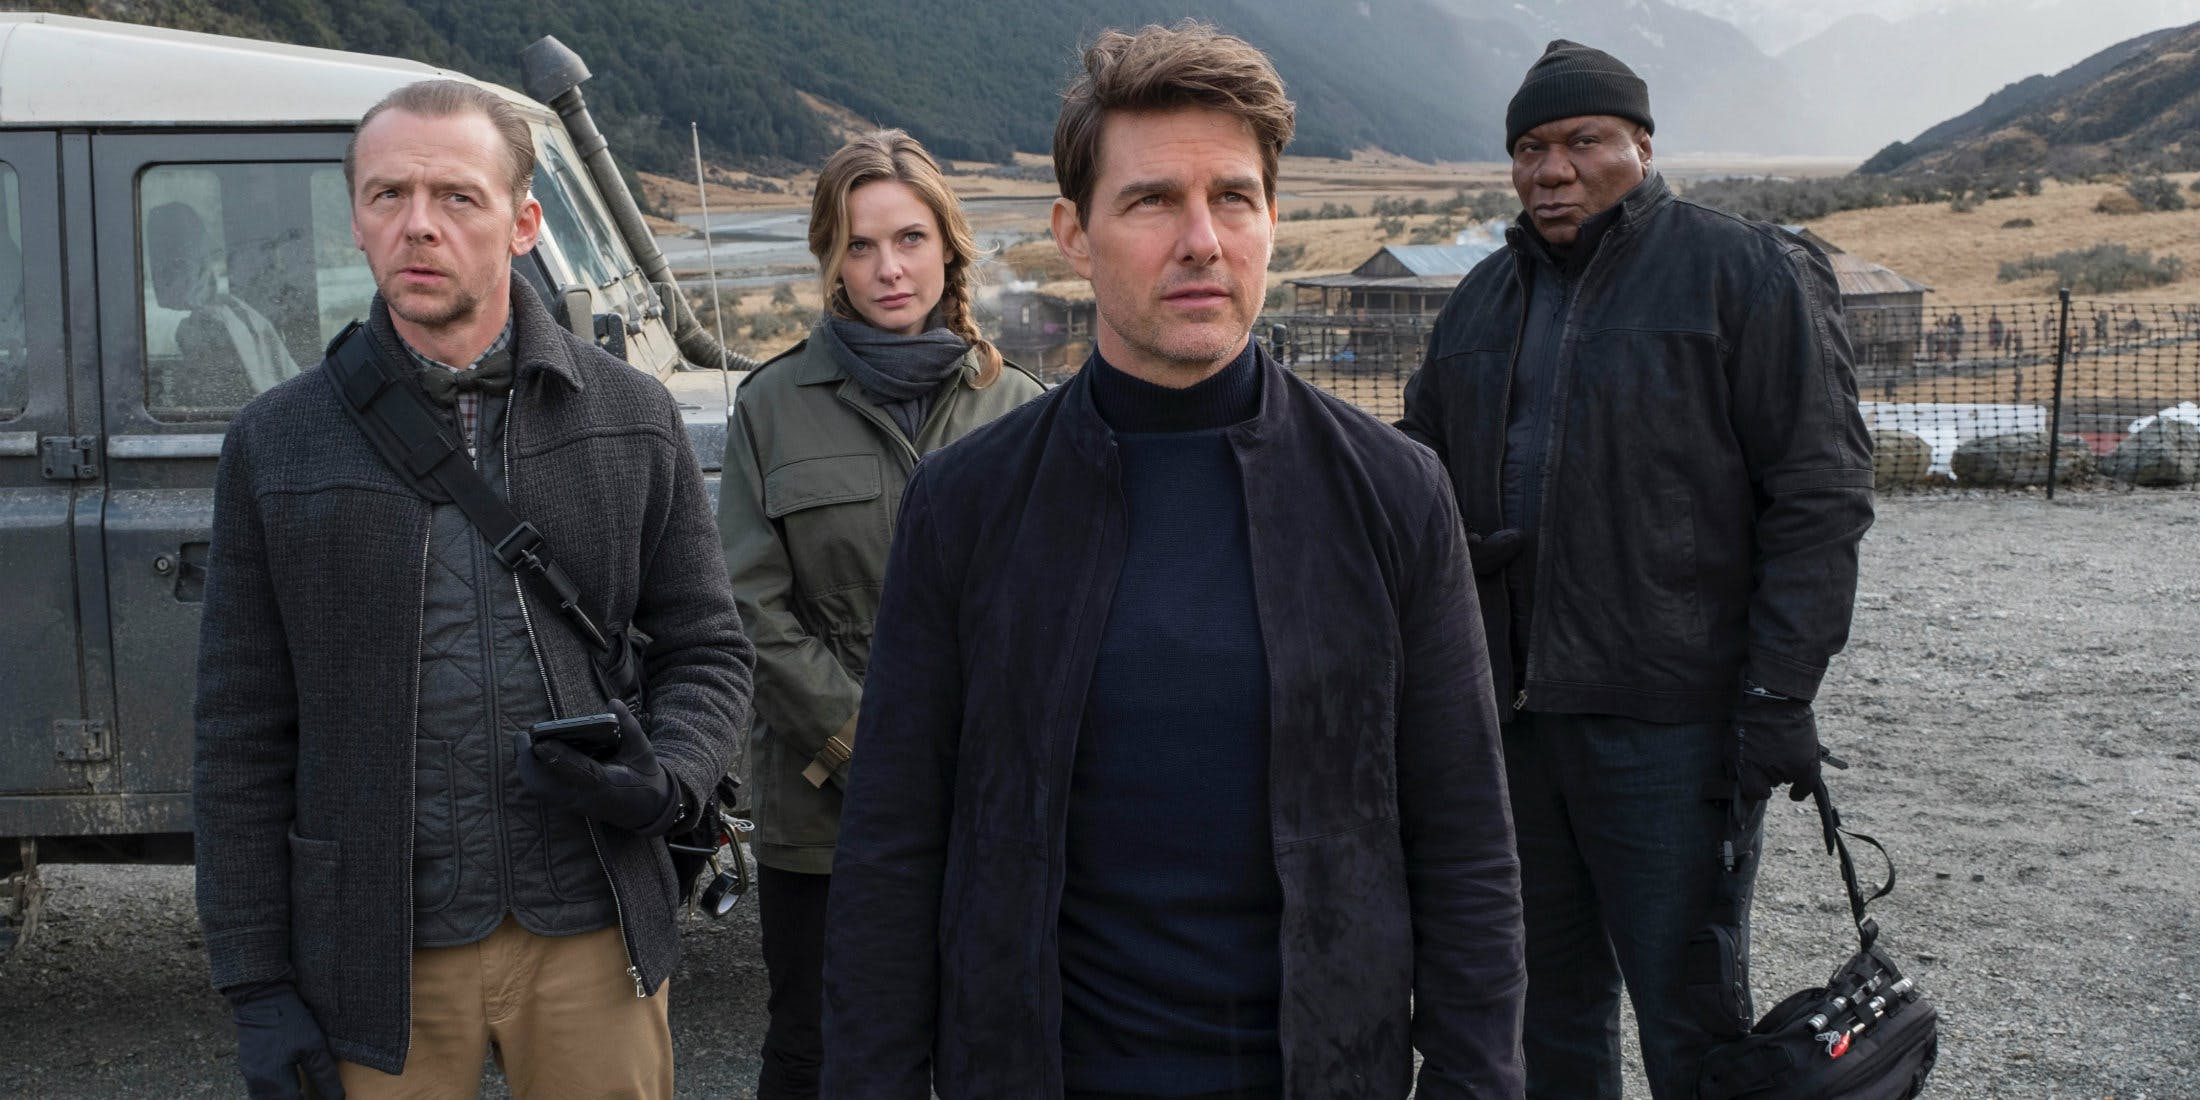 Simon-Pegg-Rebecca-Ferguson-Tom-Cruise-and-Ving-Rhames-in-Mission-Impossible-6